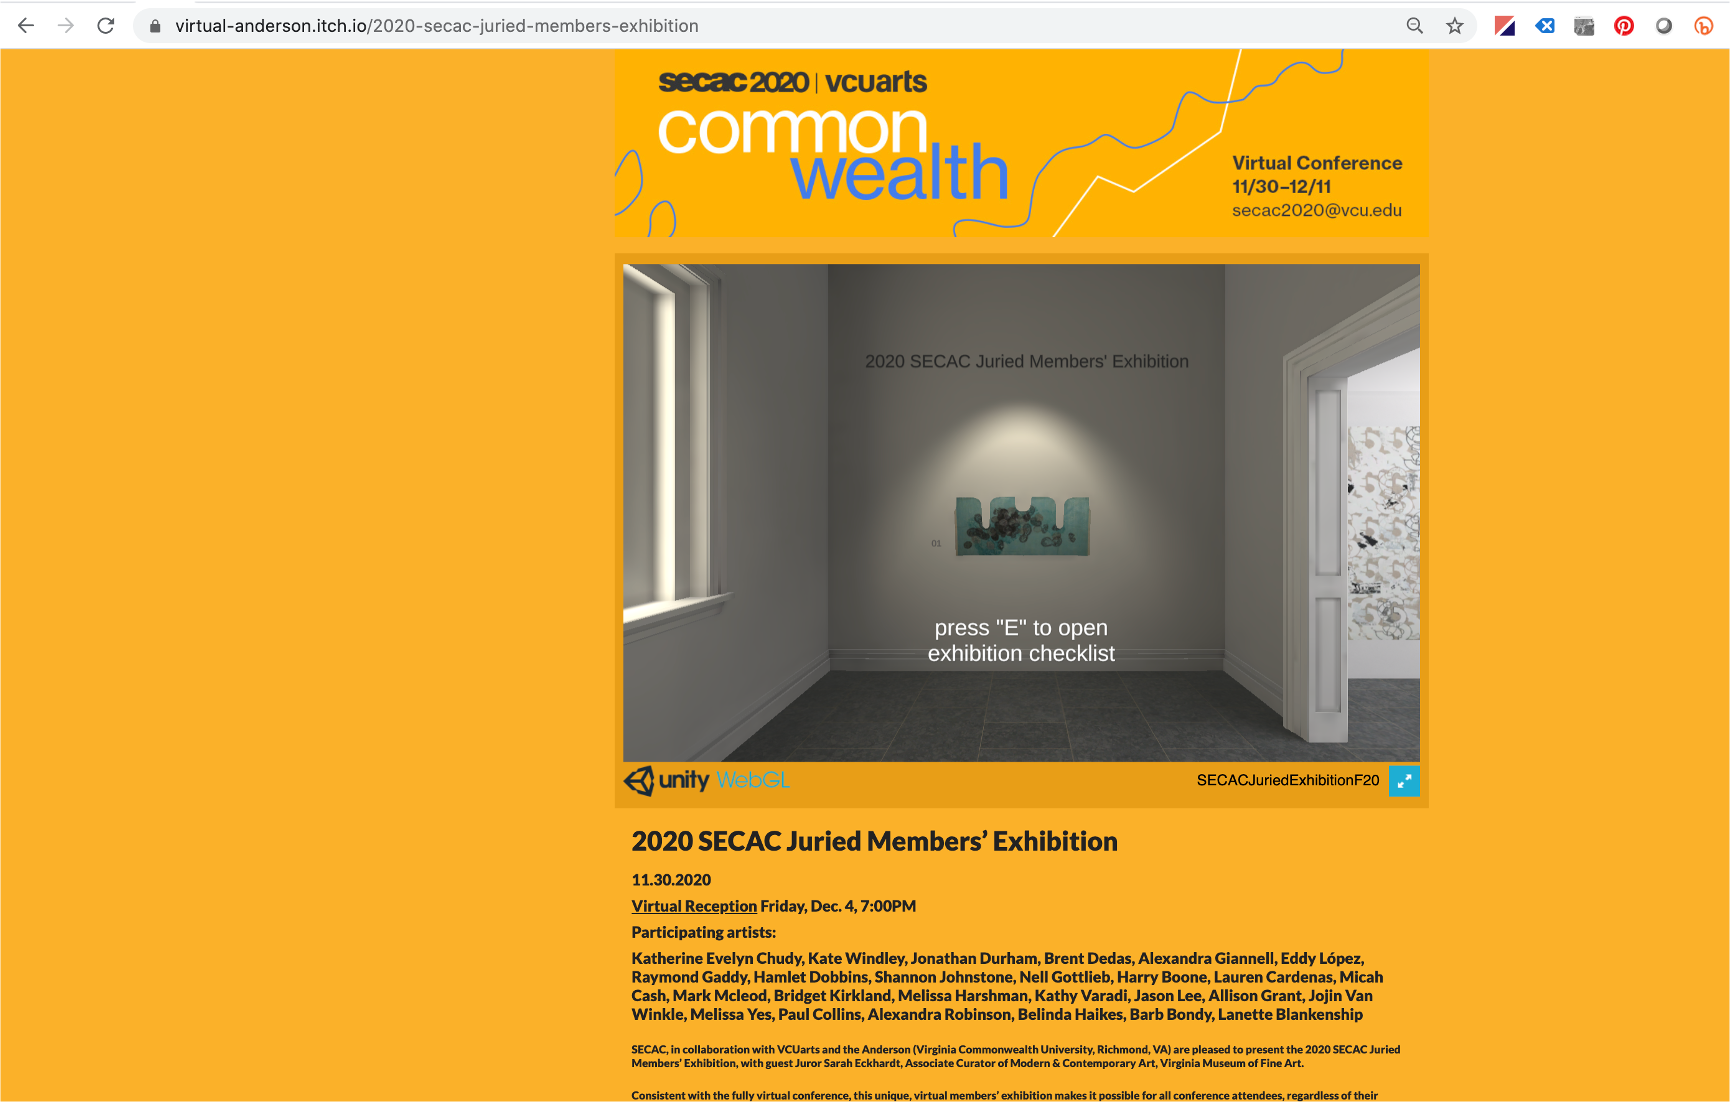 SECAC's 2020 Juried Members' Exhibition launch site in the Virtual Anderson using the Unity Game Design Engine